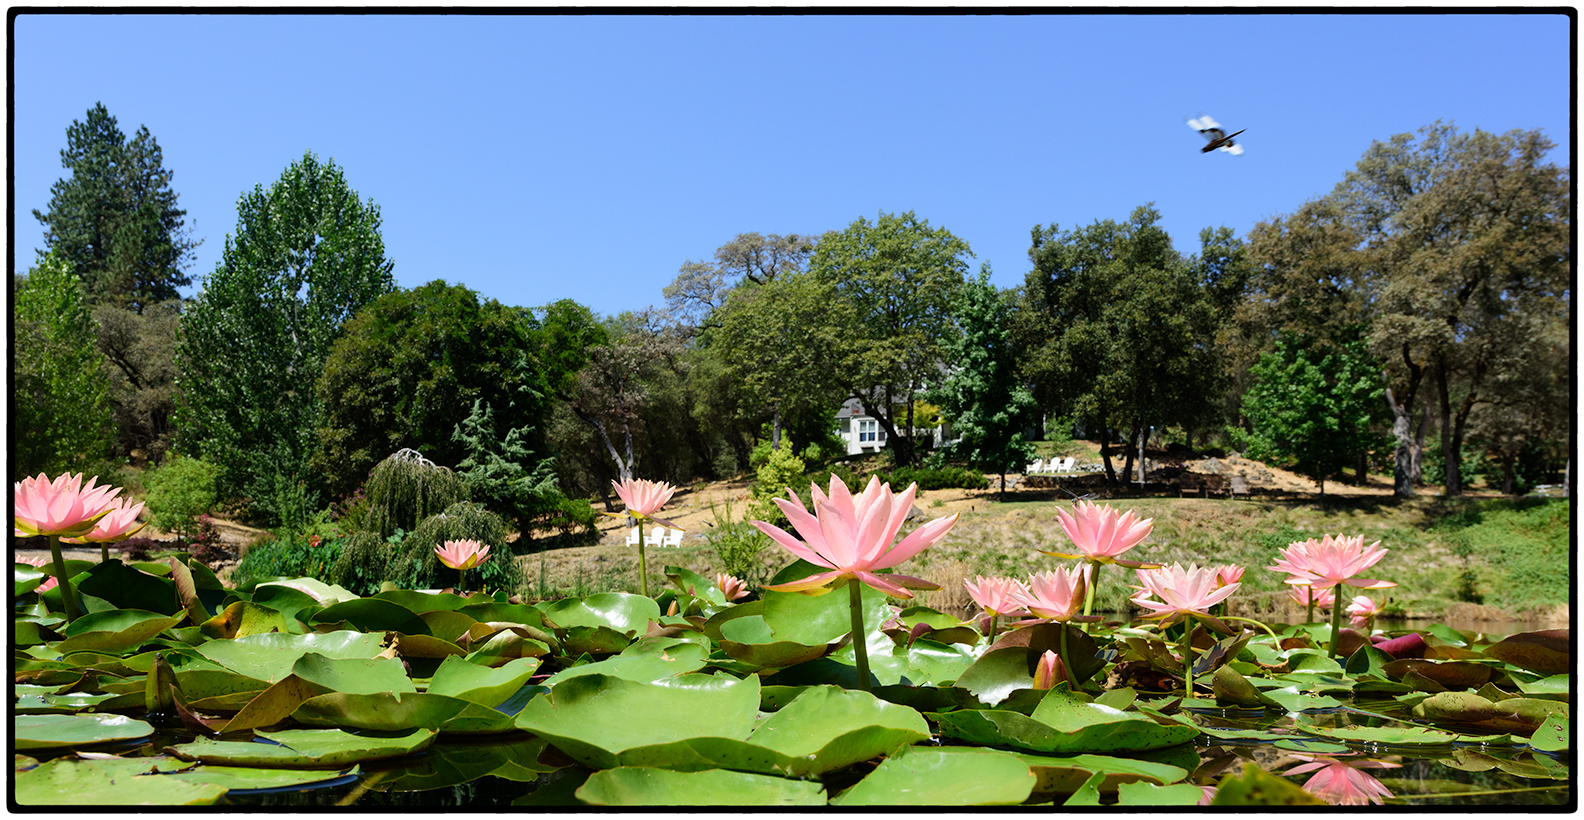 The lily pad, dragonfly, pond, and Auburn Ranch House